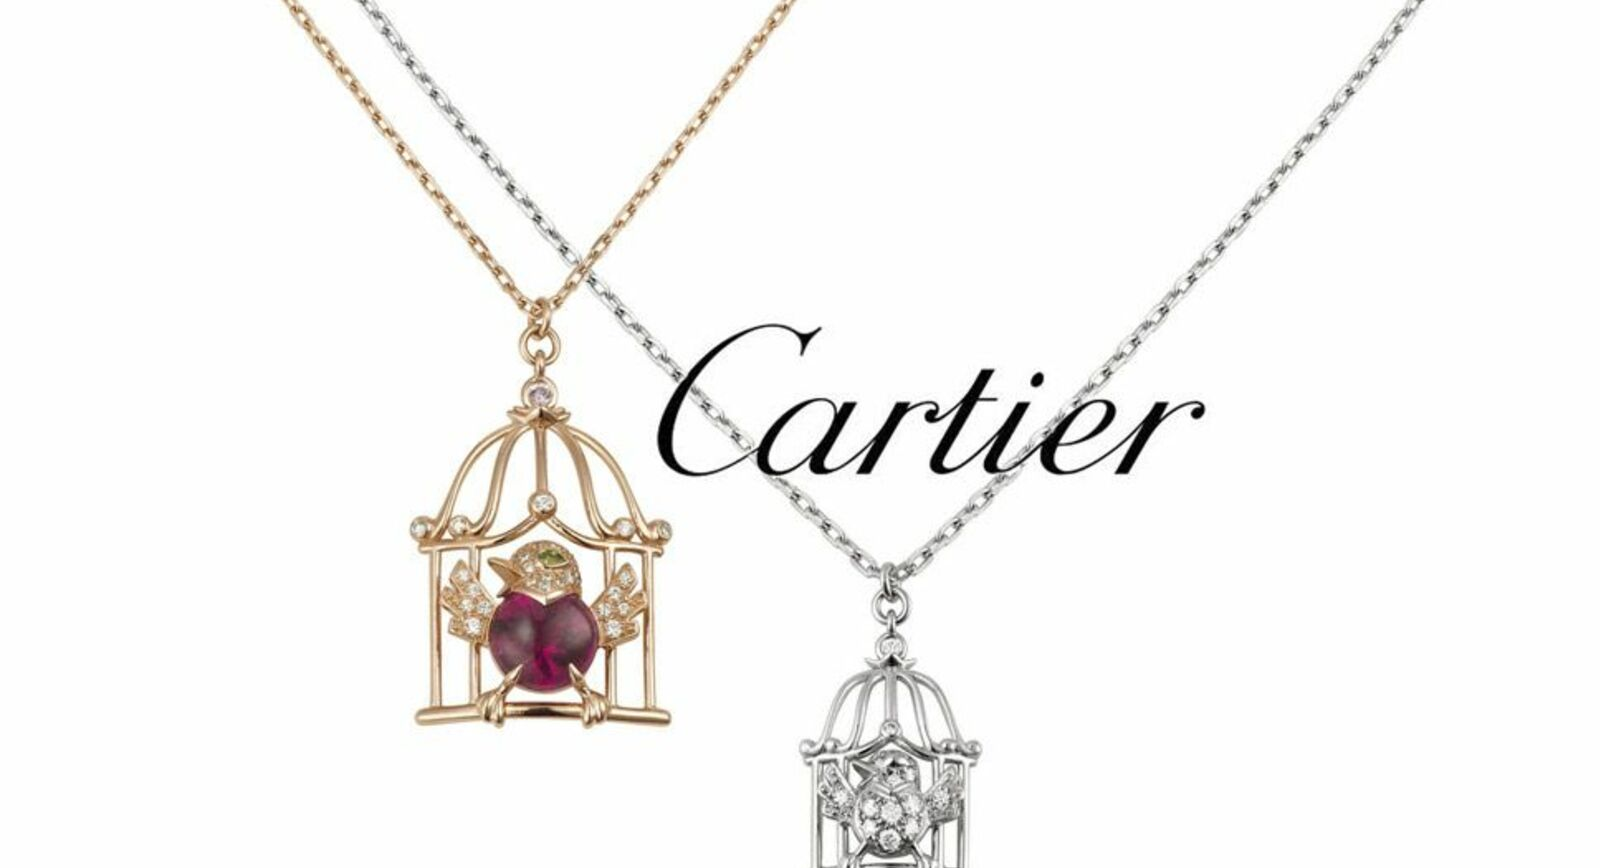 Free as a Bird – an Important Jewel by Cartier